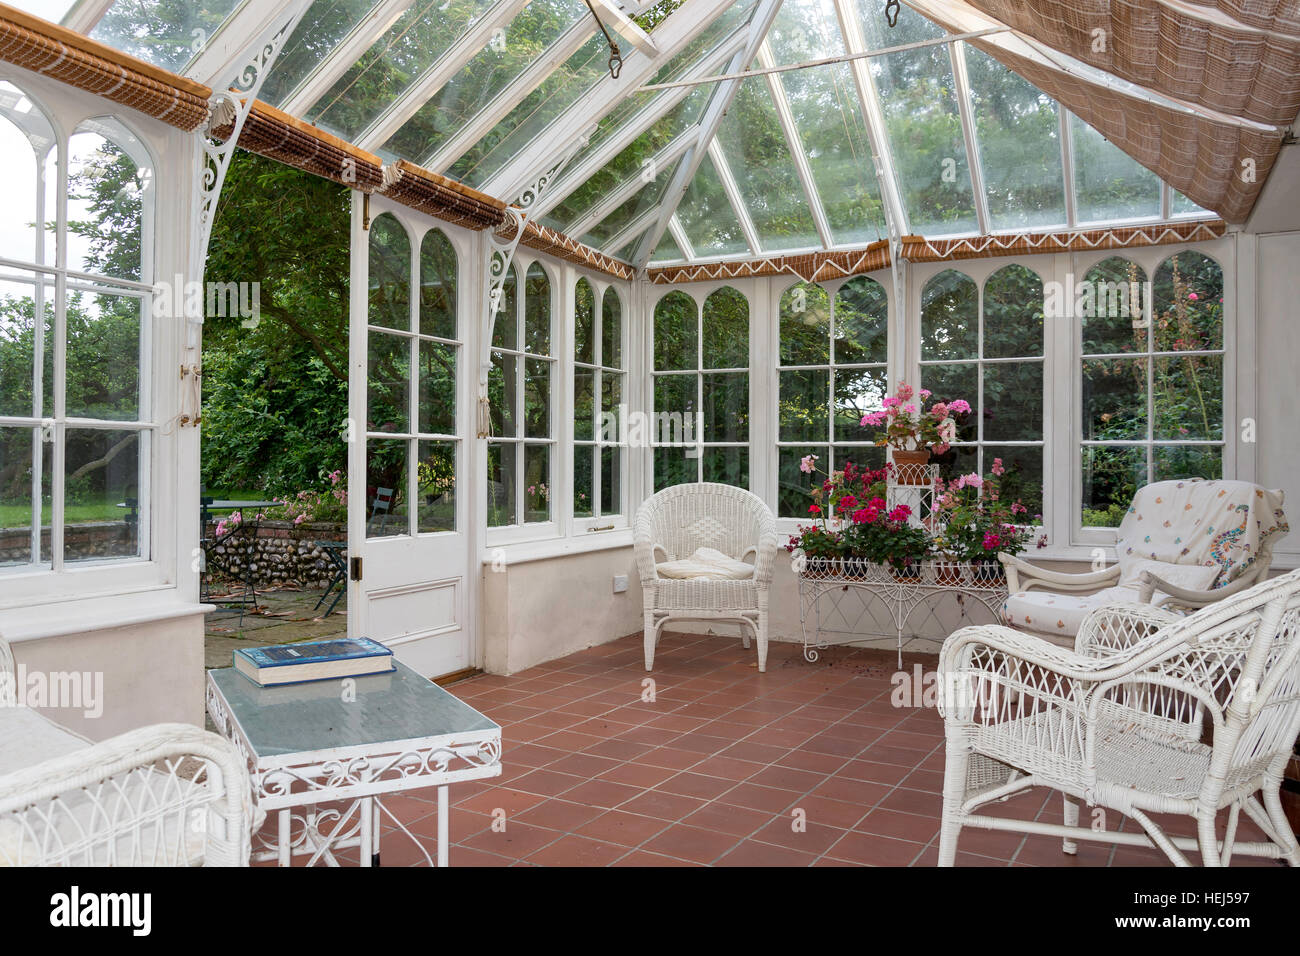 Conservatory in country cottage, South Creake, Norfolk, England, United Kingdom - Stock Image